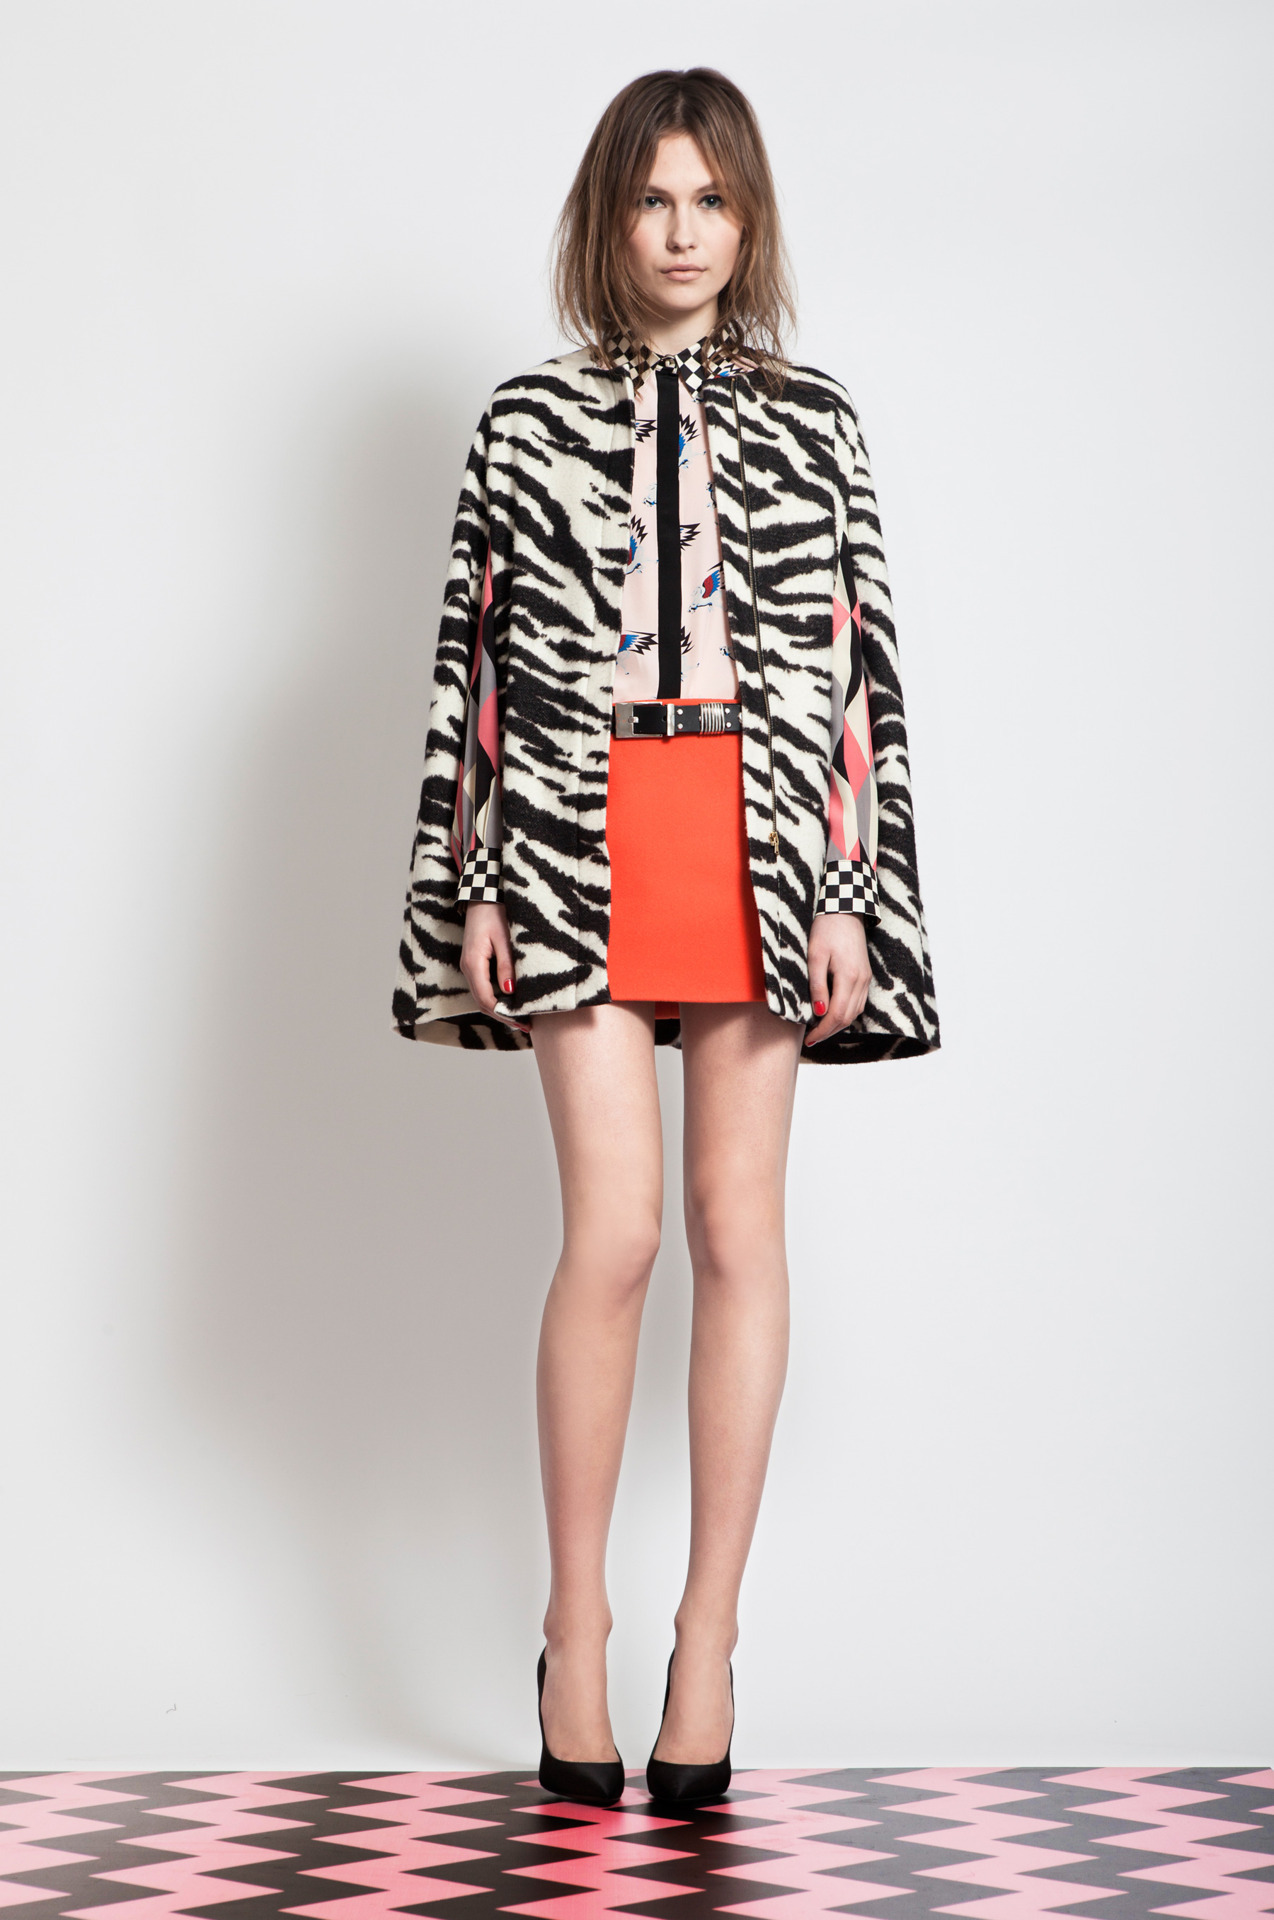 MSGM Pre-otoño 2012 De los lookbooks más bonitos que he visto últimamente. ….. MSGM Pre-fall 2012 One of the cutest lookbooks I've seen lately.